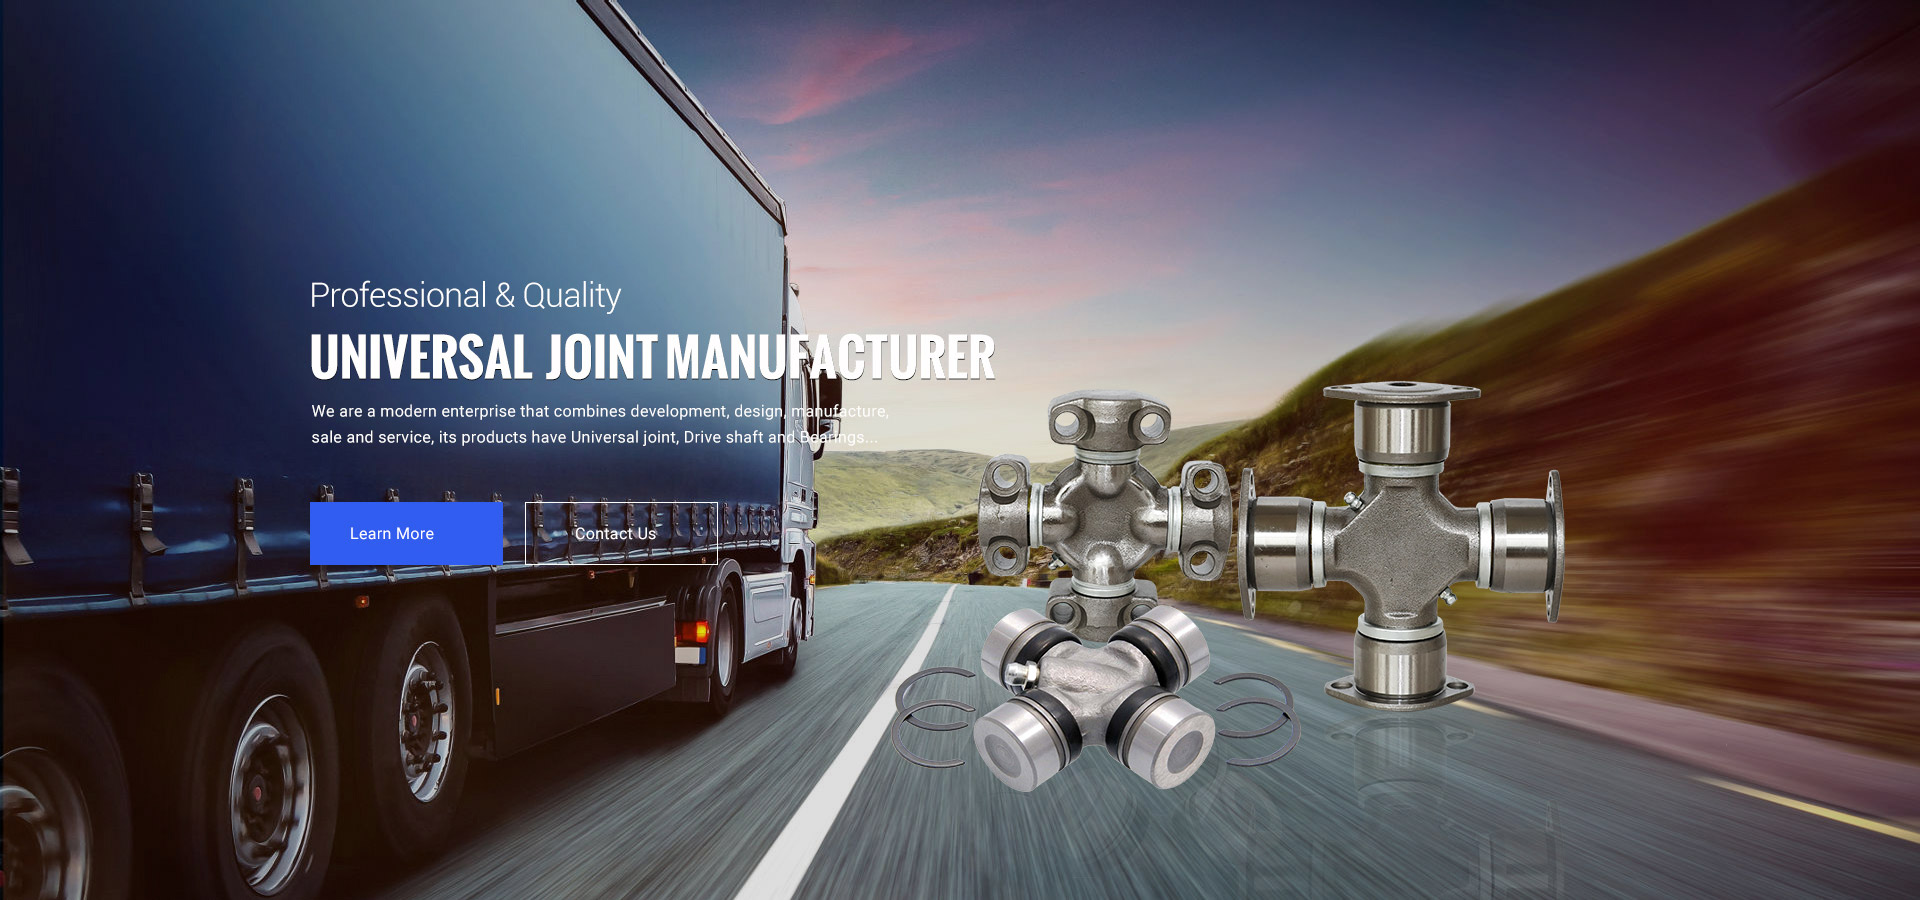 UNIVERSAL JOINT MANUFACTURE